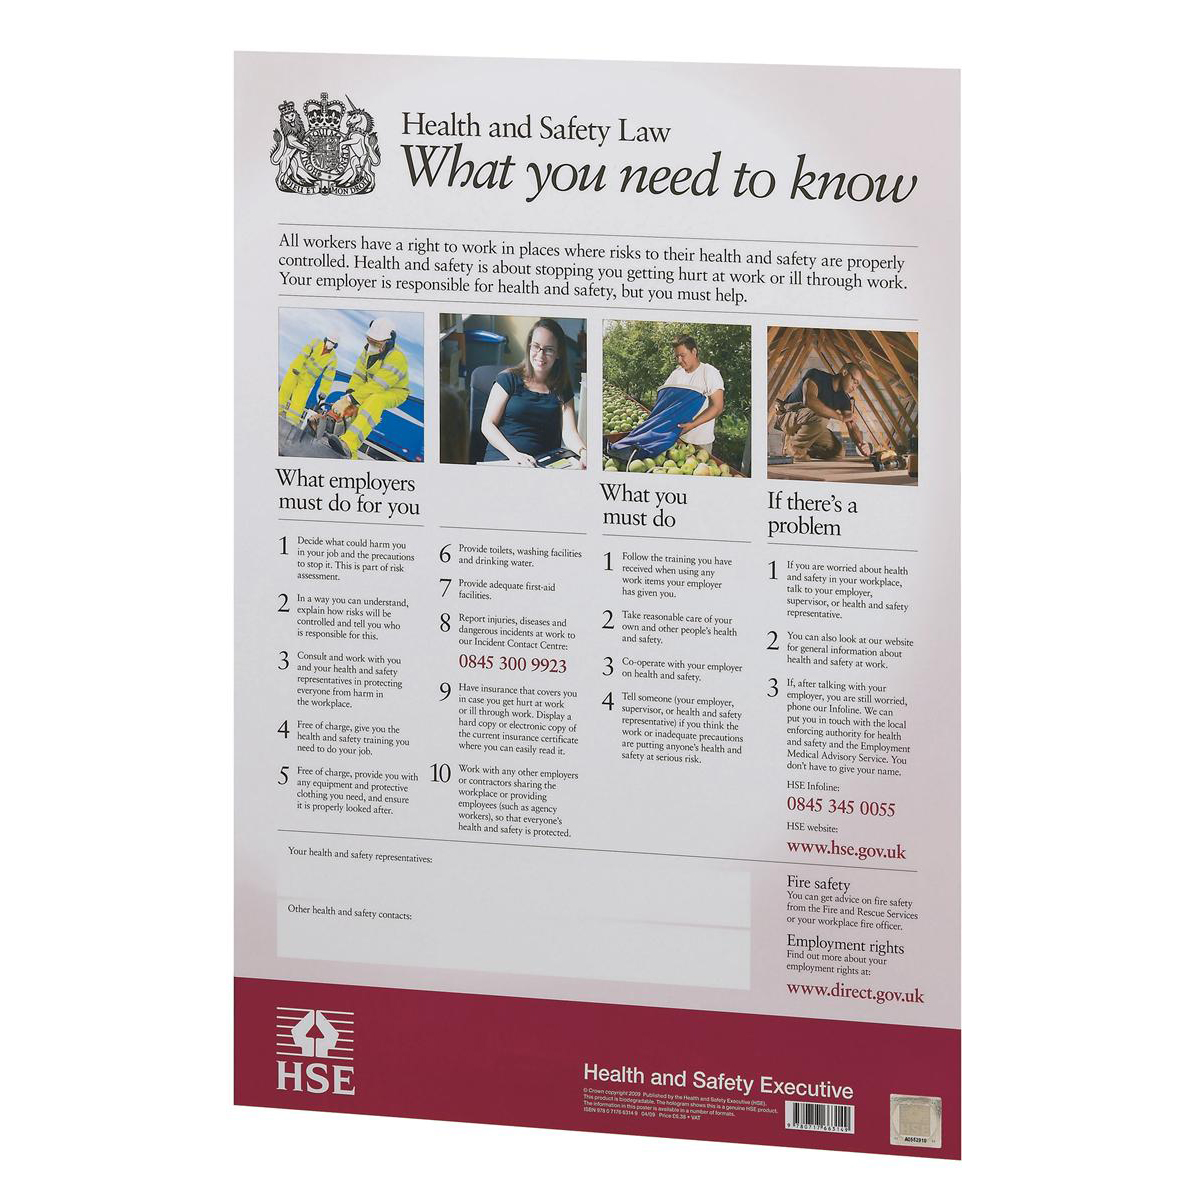 Stewart Superior Health and Safety Law Poster PVC W297xH420mm A3 Ref FWC0/A3